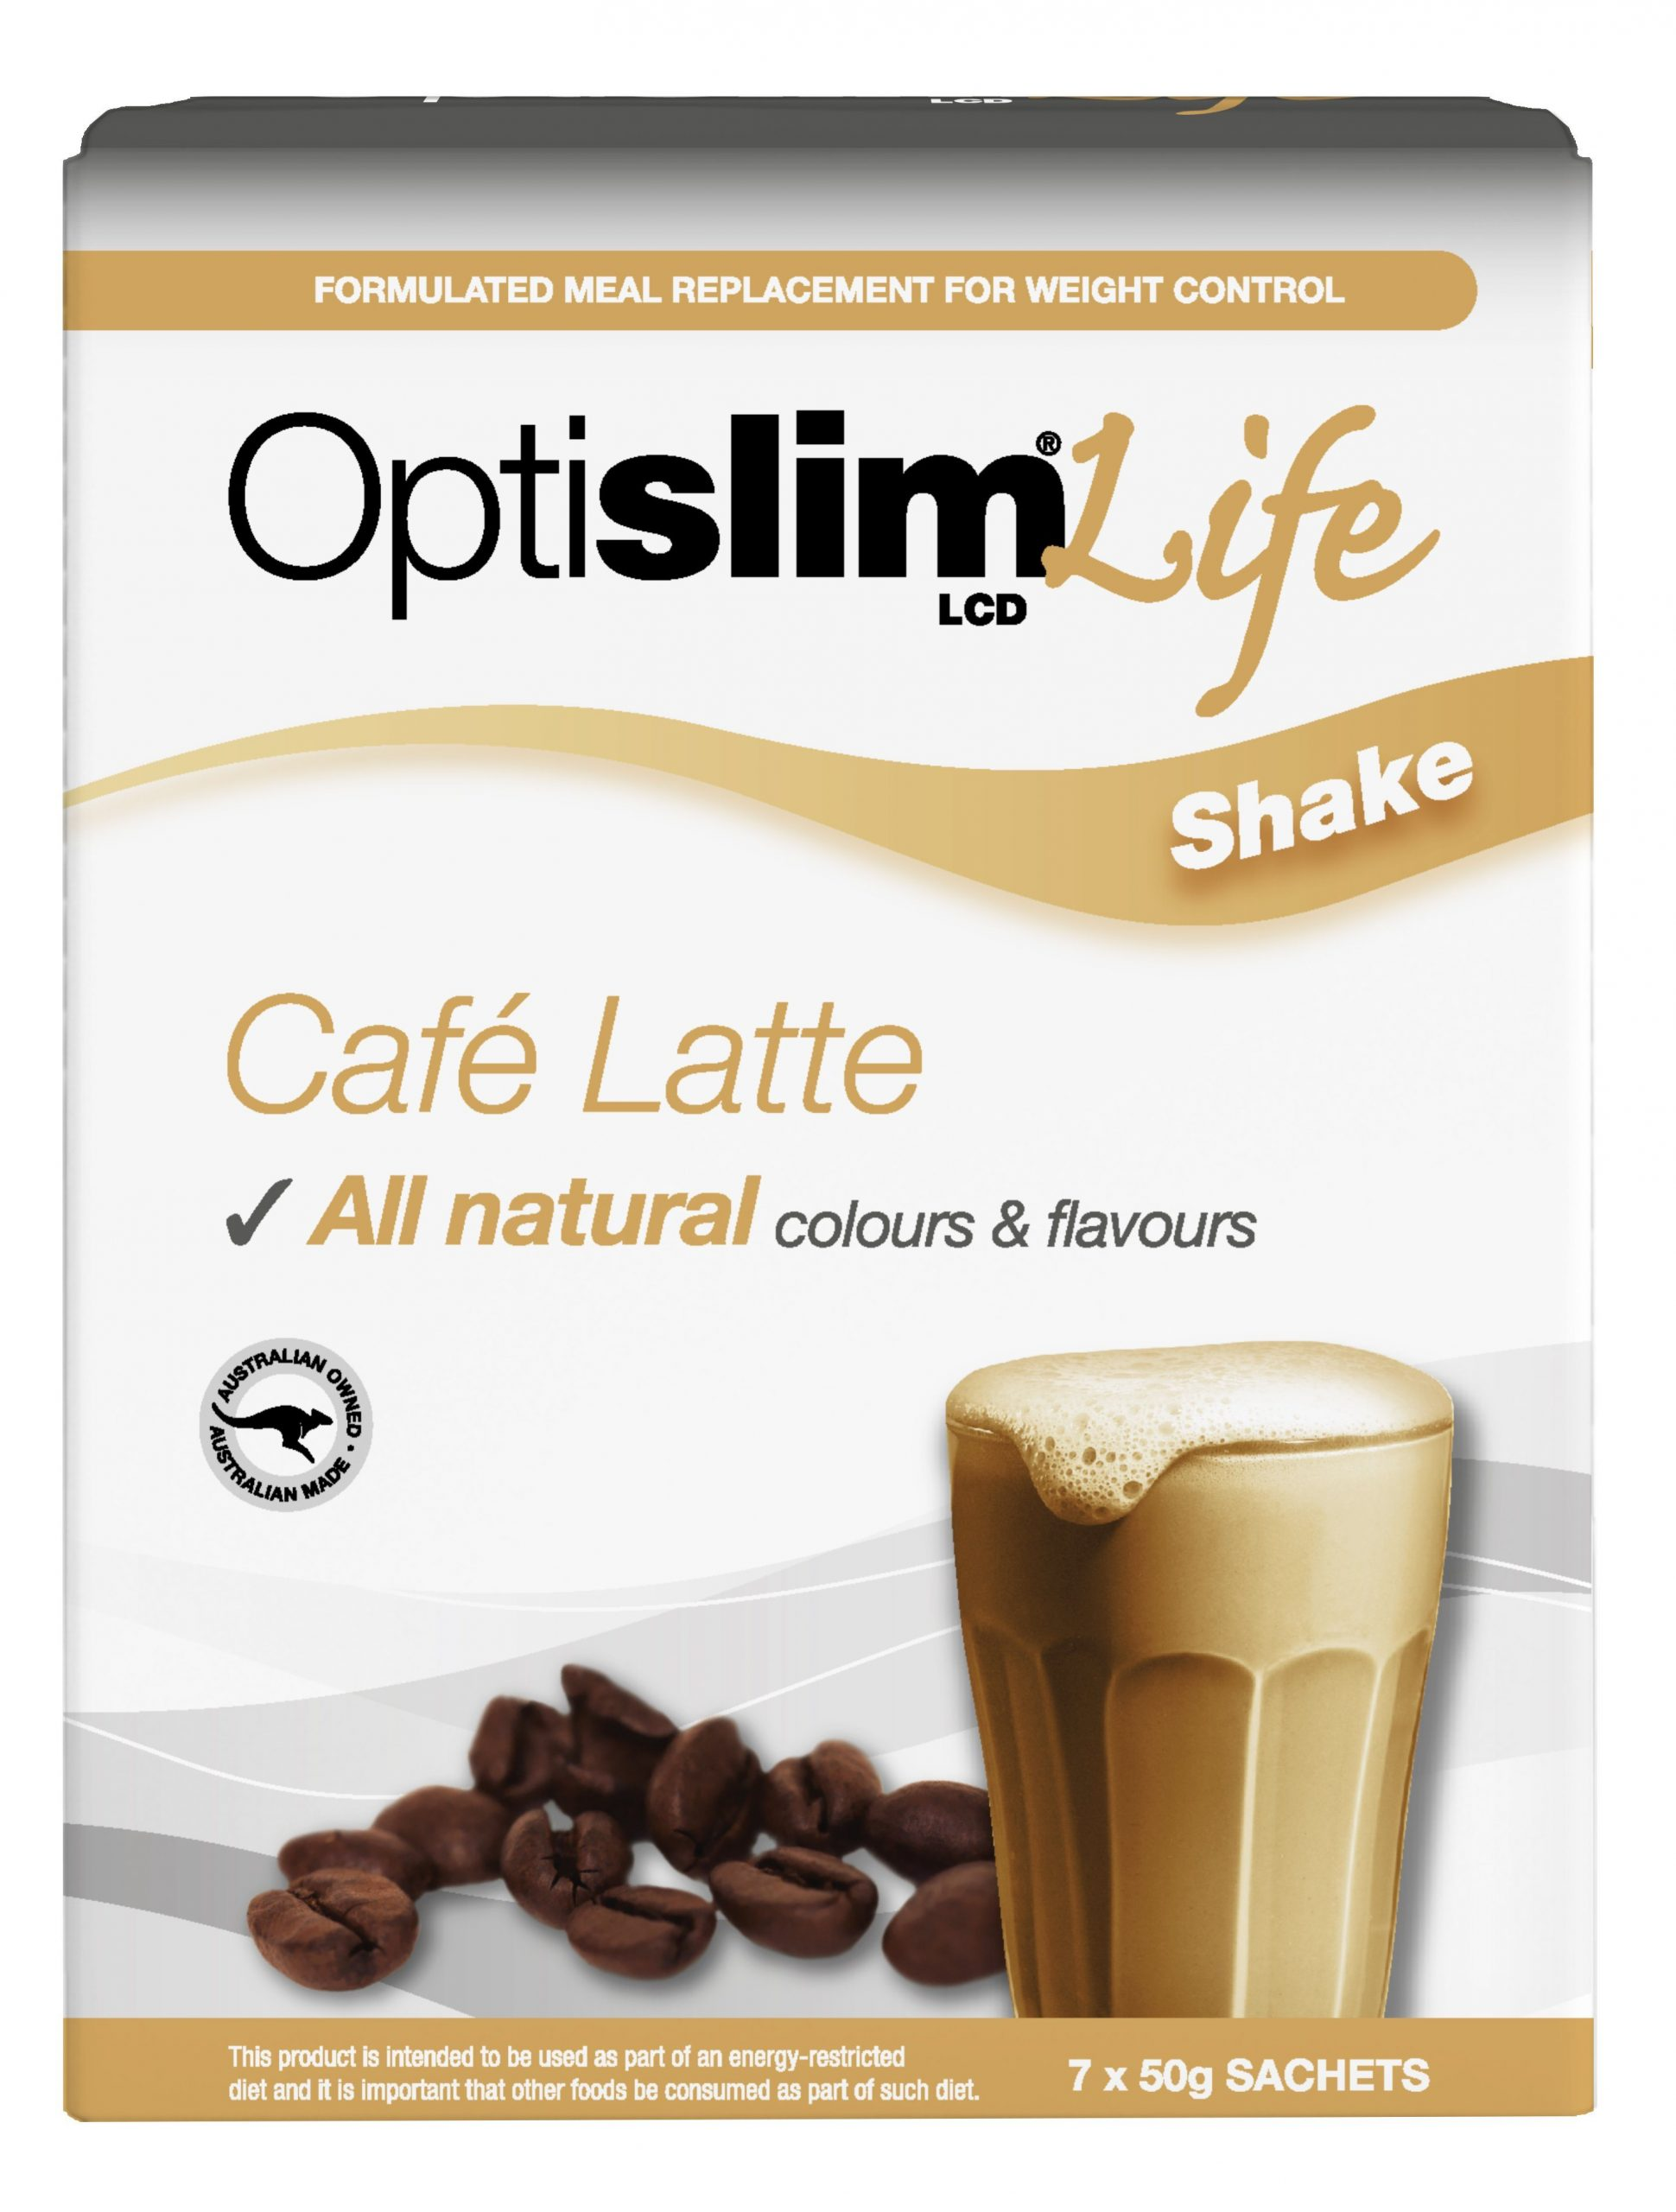 Optislim Life Shake LCD Cafe Latte (7x50g) Weight Loss OptiSlim